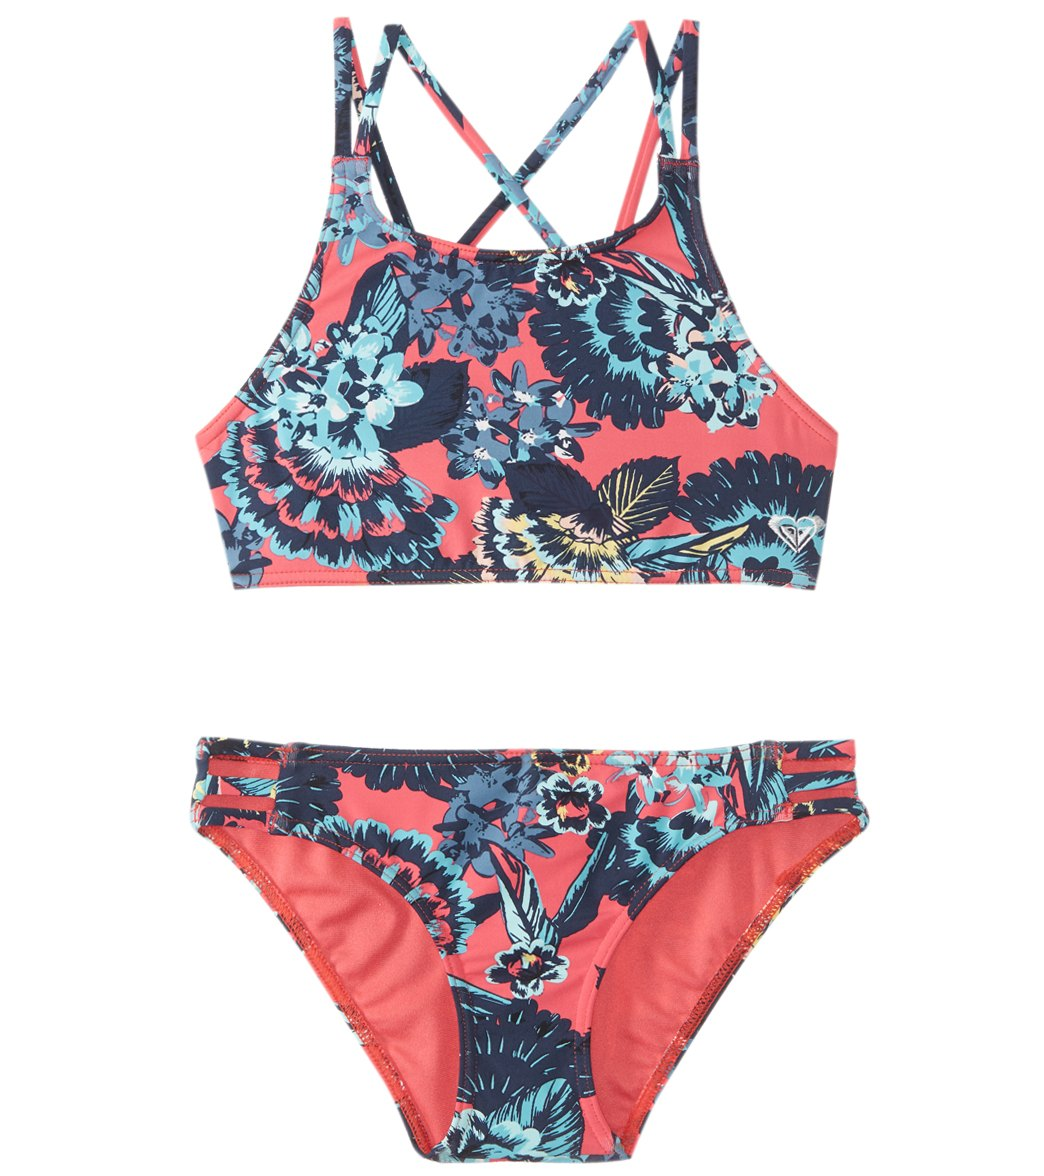 0a137e40a3 Roxy Girls' Let The Surf Crop Top Swimwear Set (Big Kid) at SwimOutlet.com